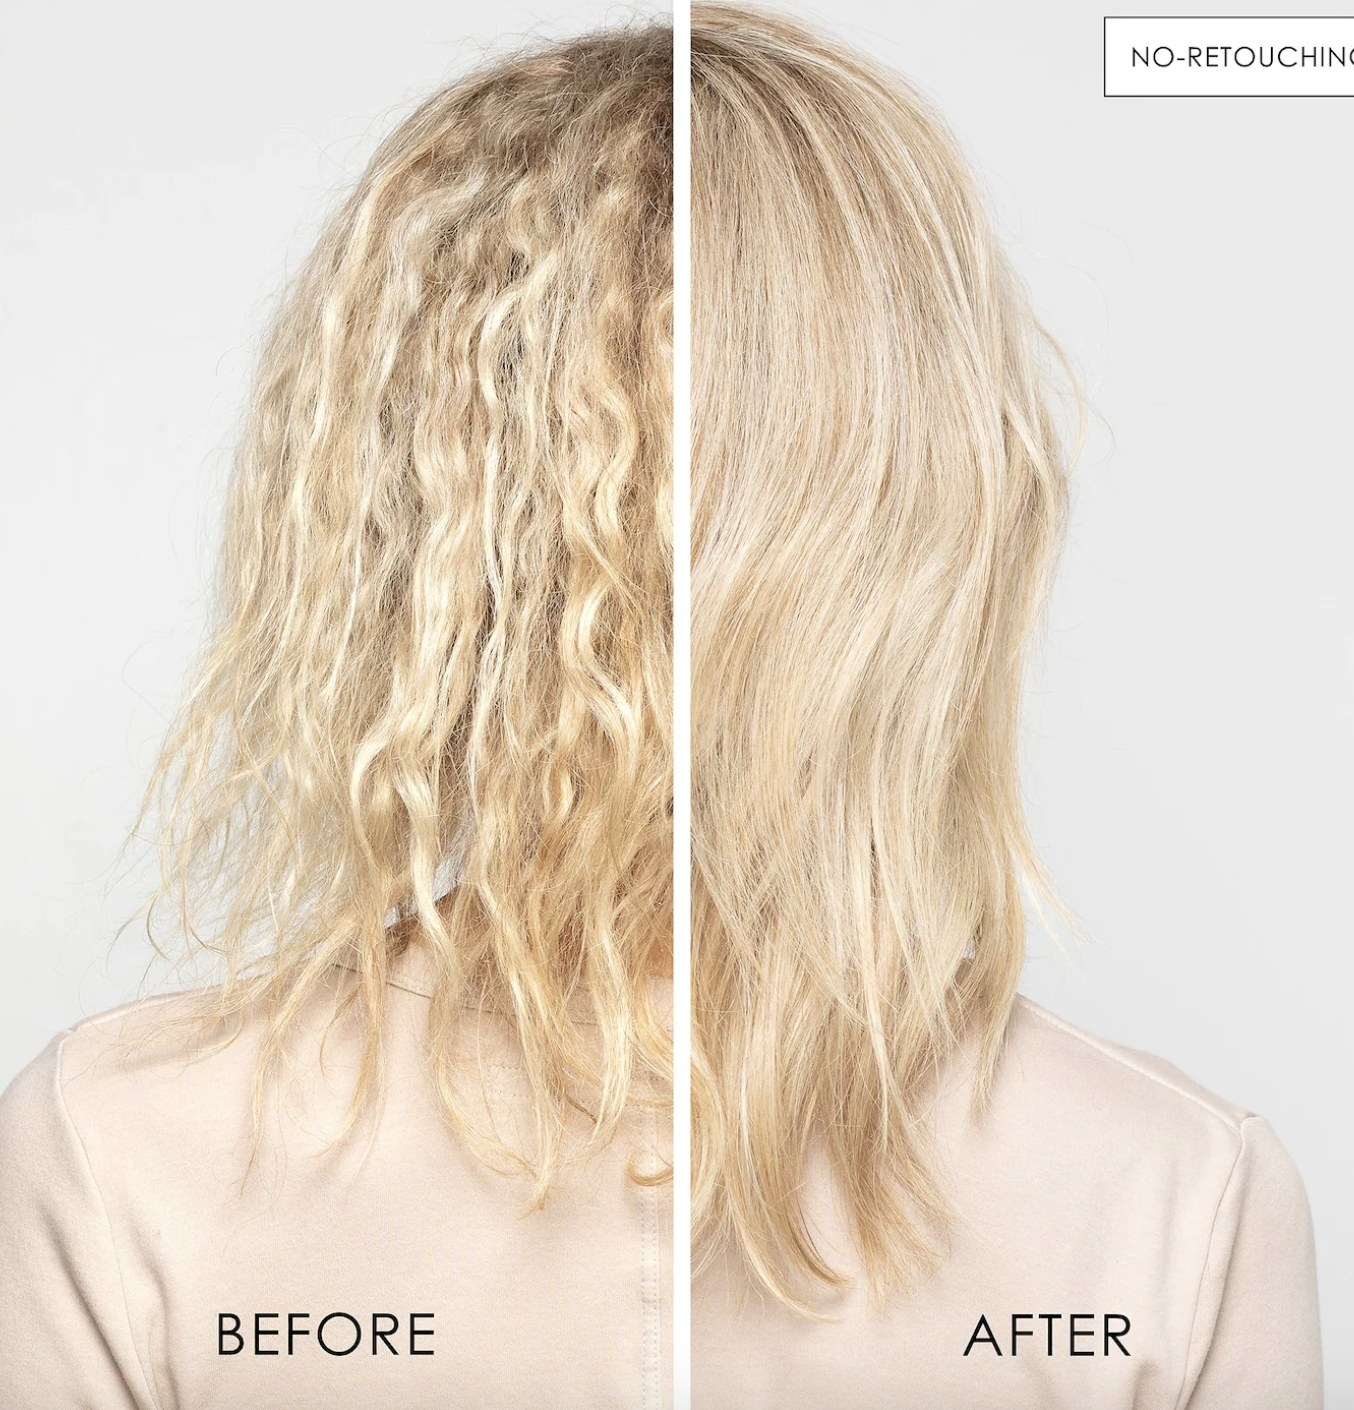 on the left a model's blonde damaged hair before the treatment, on the right the same model after the treatment with smoother hair